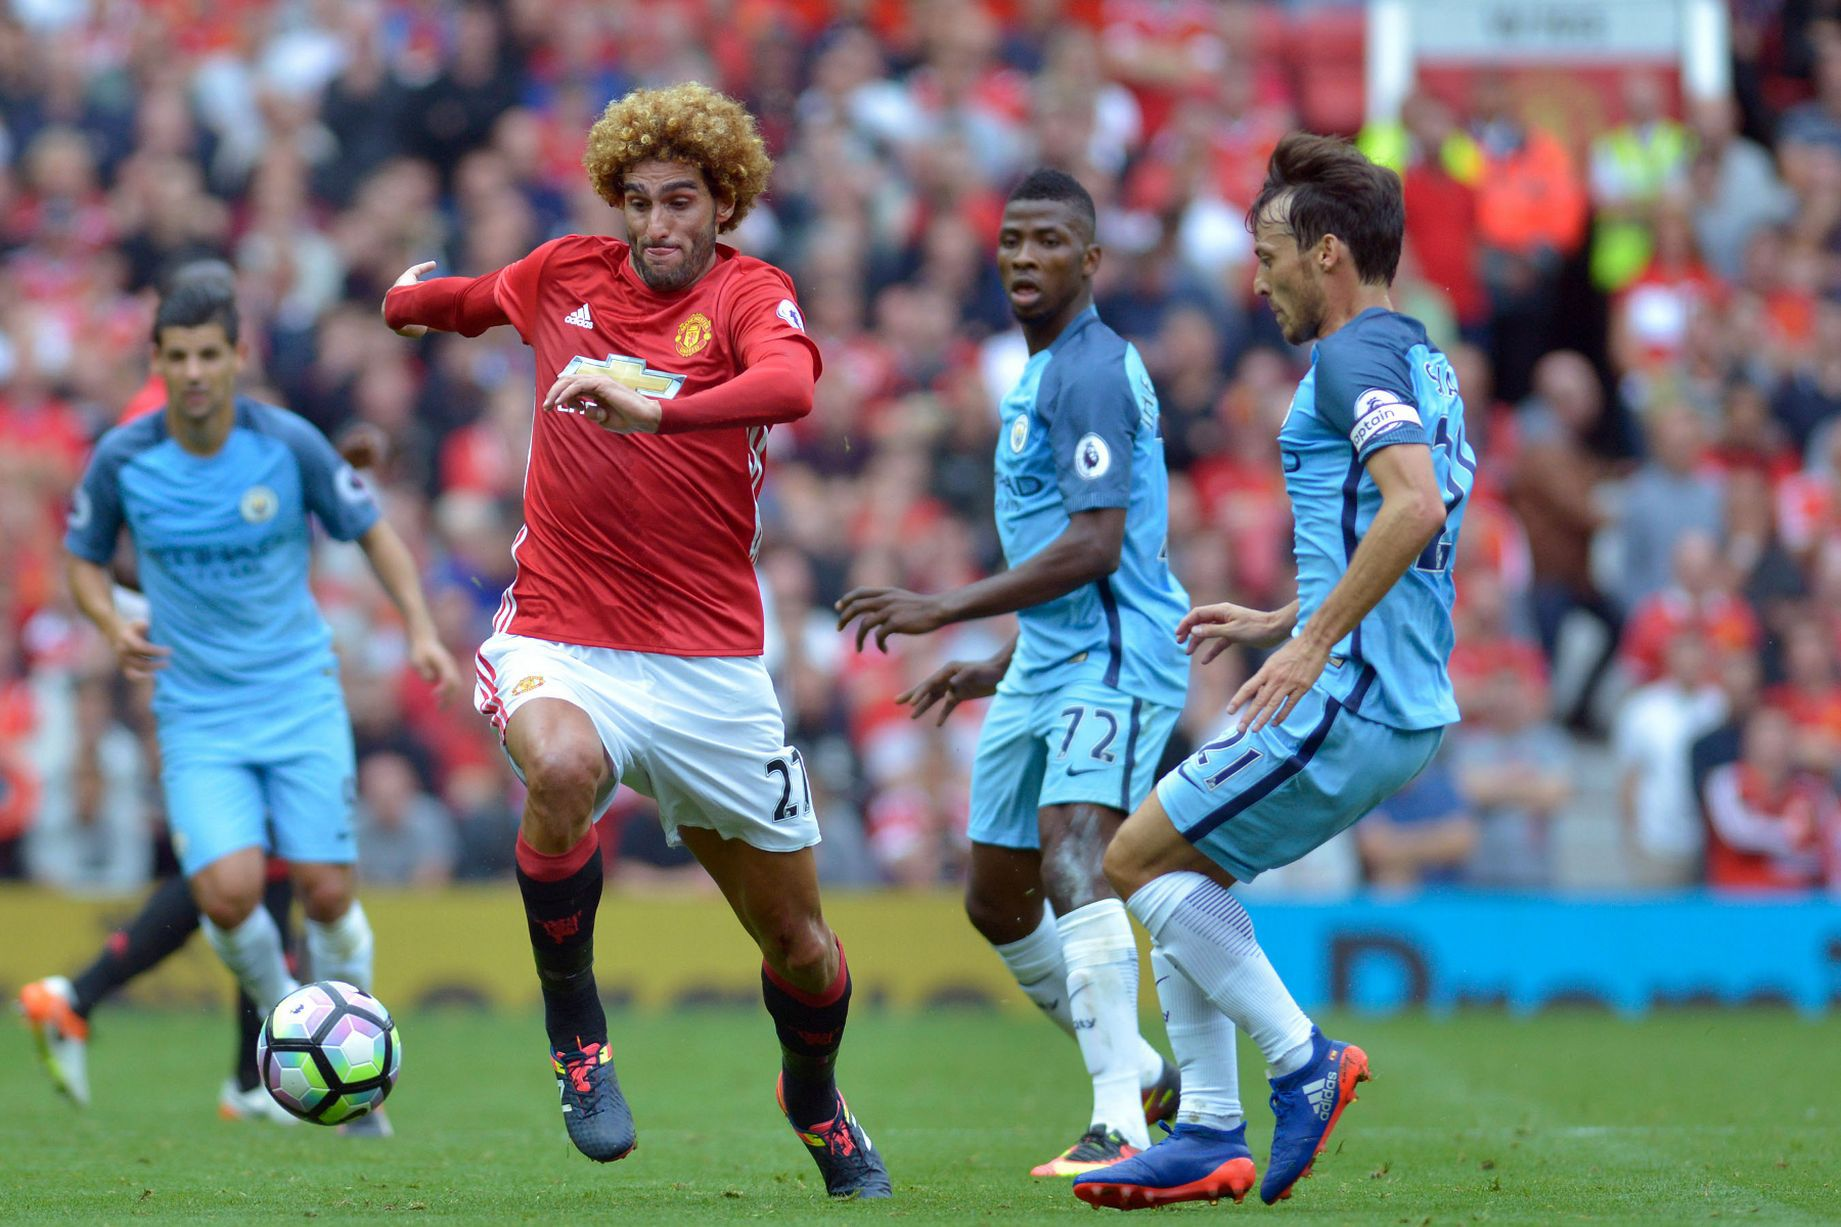 Fellaini the felon - the vile Belgian knocked out Kolarov's tooth and spat at Nolito and still had only the one yellow card to show for it.